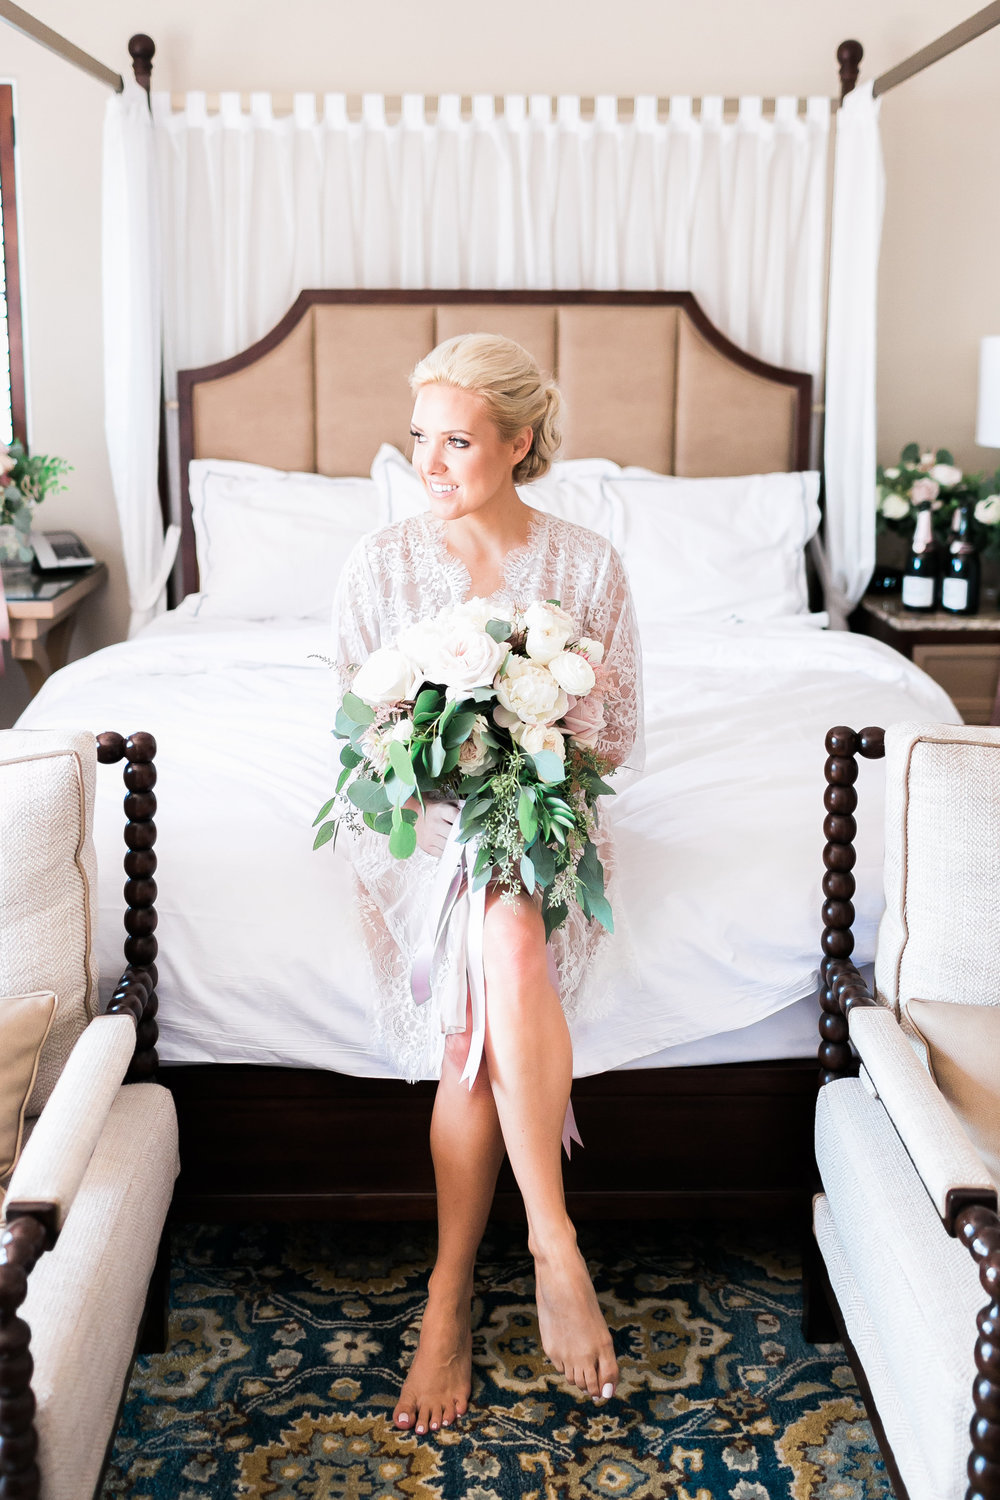 Blonde bride in robe with lush bouquet.    CREDITS:  Destination Wedding Planner  ANDREA EPPOLITO EVENTS   ·  Images by  J.ANNE P  HOTOGRAPHY   ·  Video  HOO FILMS   ·  Venue Ritz Carlton Bacara Santa Barbara  · Gown  MONIQUE LHULLIER  · Bridesmaids Dresses  SHOW ME YOUR MUMU  · Stationery  SHE PAPERIE  · Bride's Shoes  BADGLEY MISCHKA  · Hair and Makeup  TEAM HAIR AND MAKEUP  · Floral  BLUE MAGNOLIA  · Linen  LA TAVOLA  · Decor Rentals  TENT MERCHANT  · Calligraphy  EBB  ·Lighting  FIVE STAR AV  · Ice Cream Station  MCCONNELL'S ICE CREAM